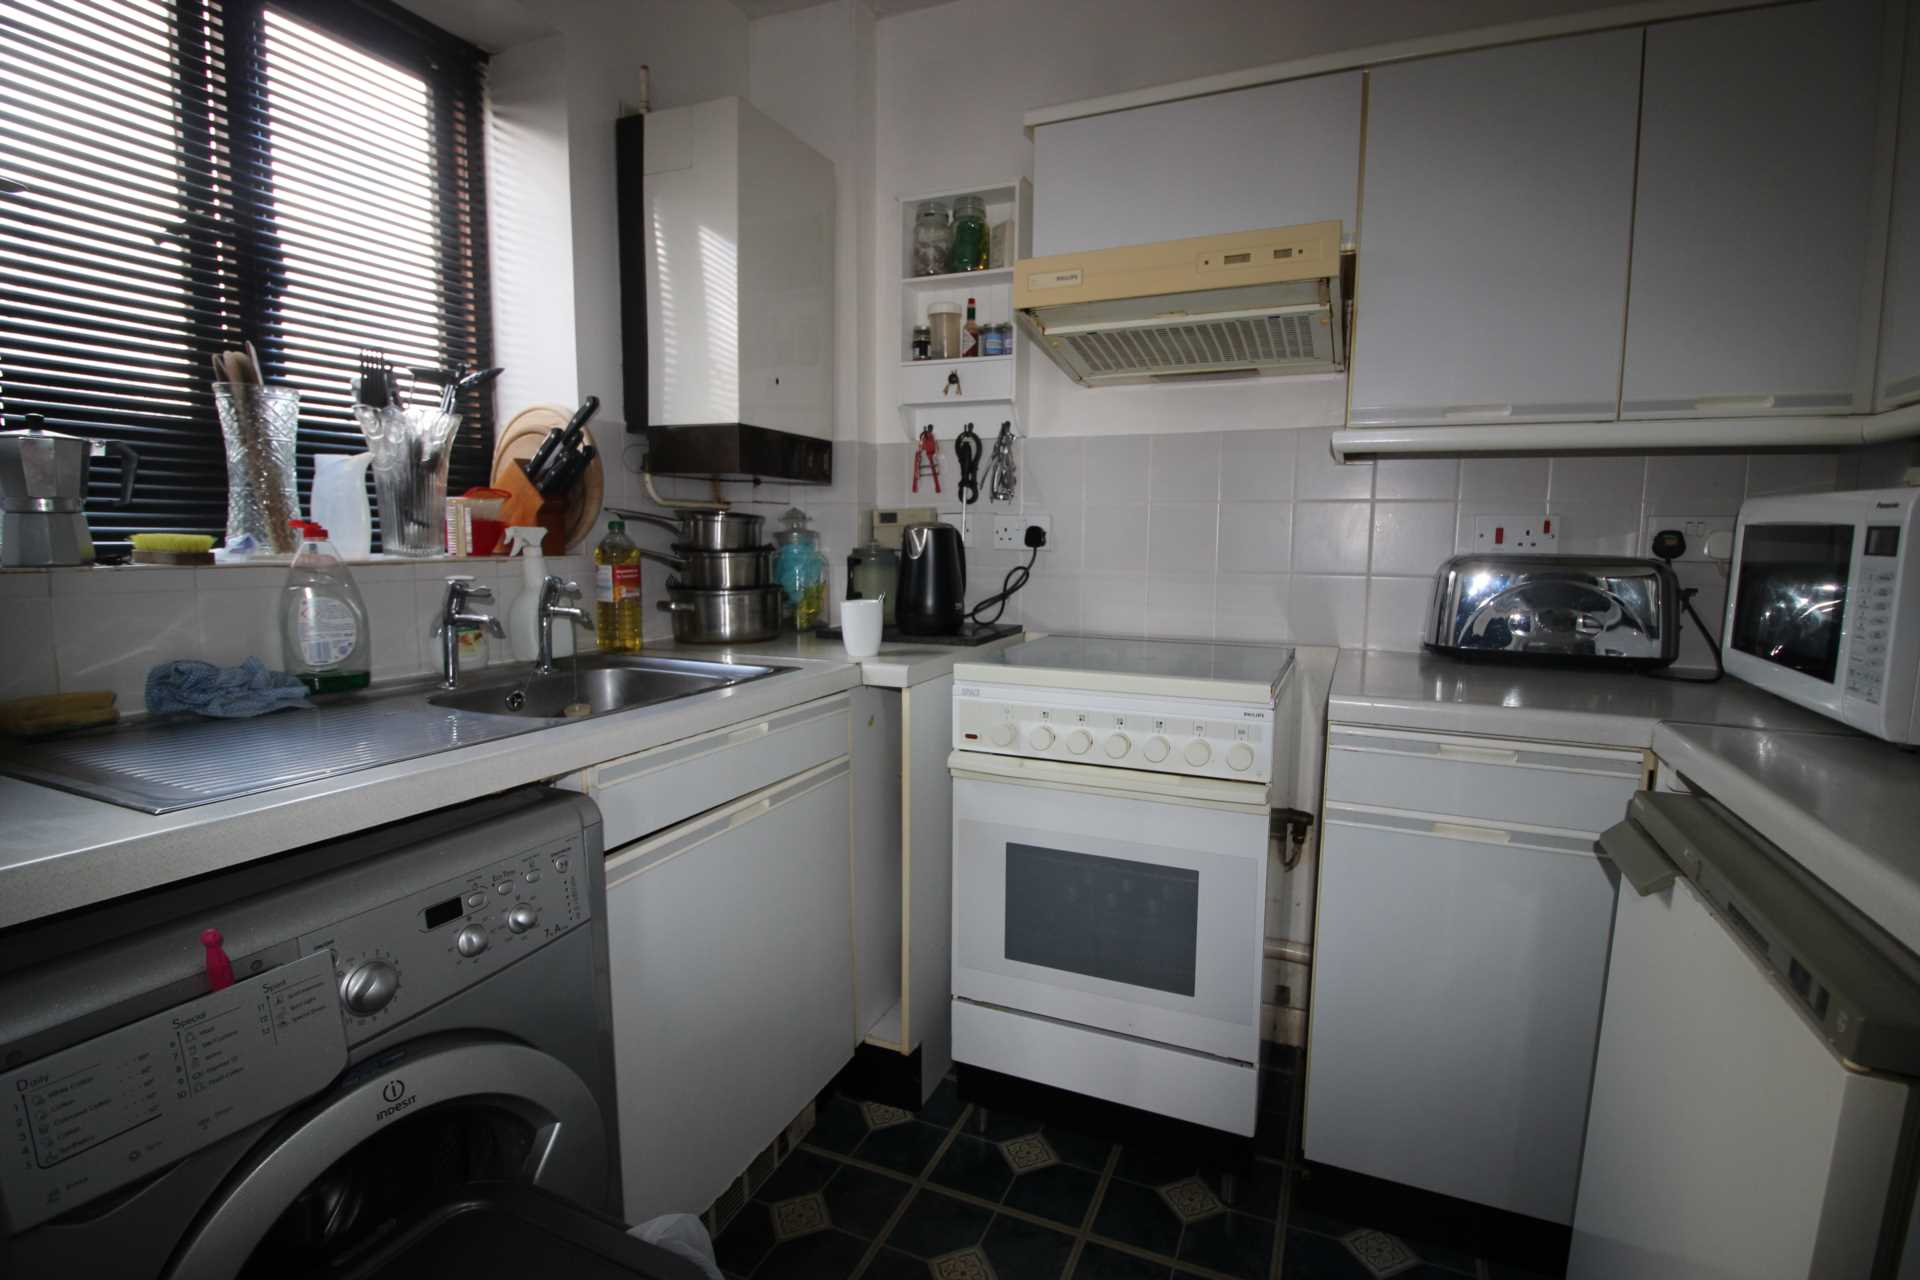 Avignon Road, Brockley, SE4 2DN, Image 3